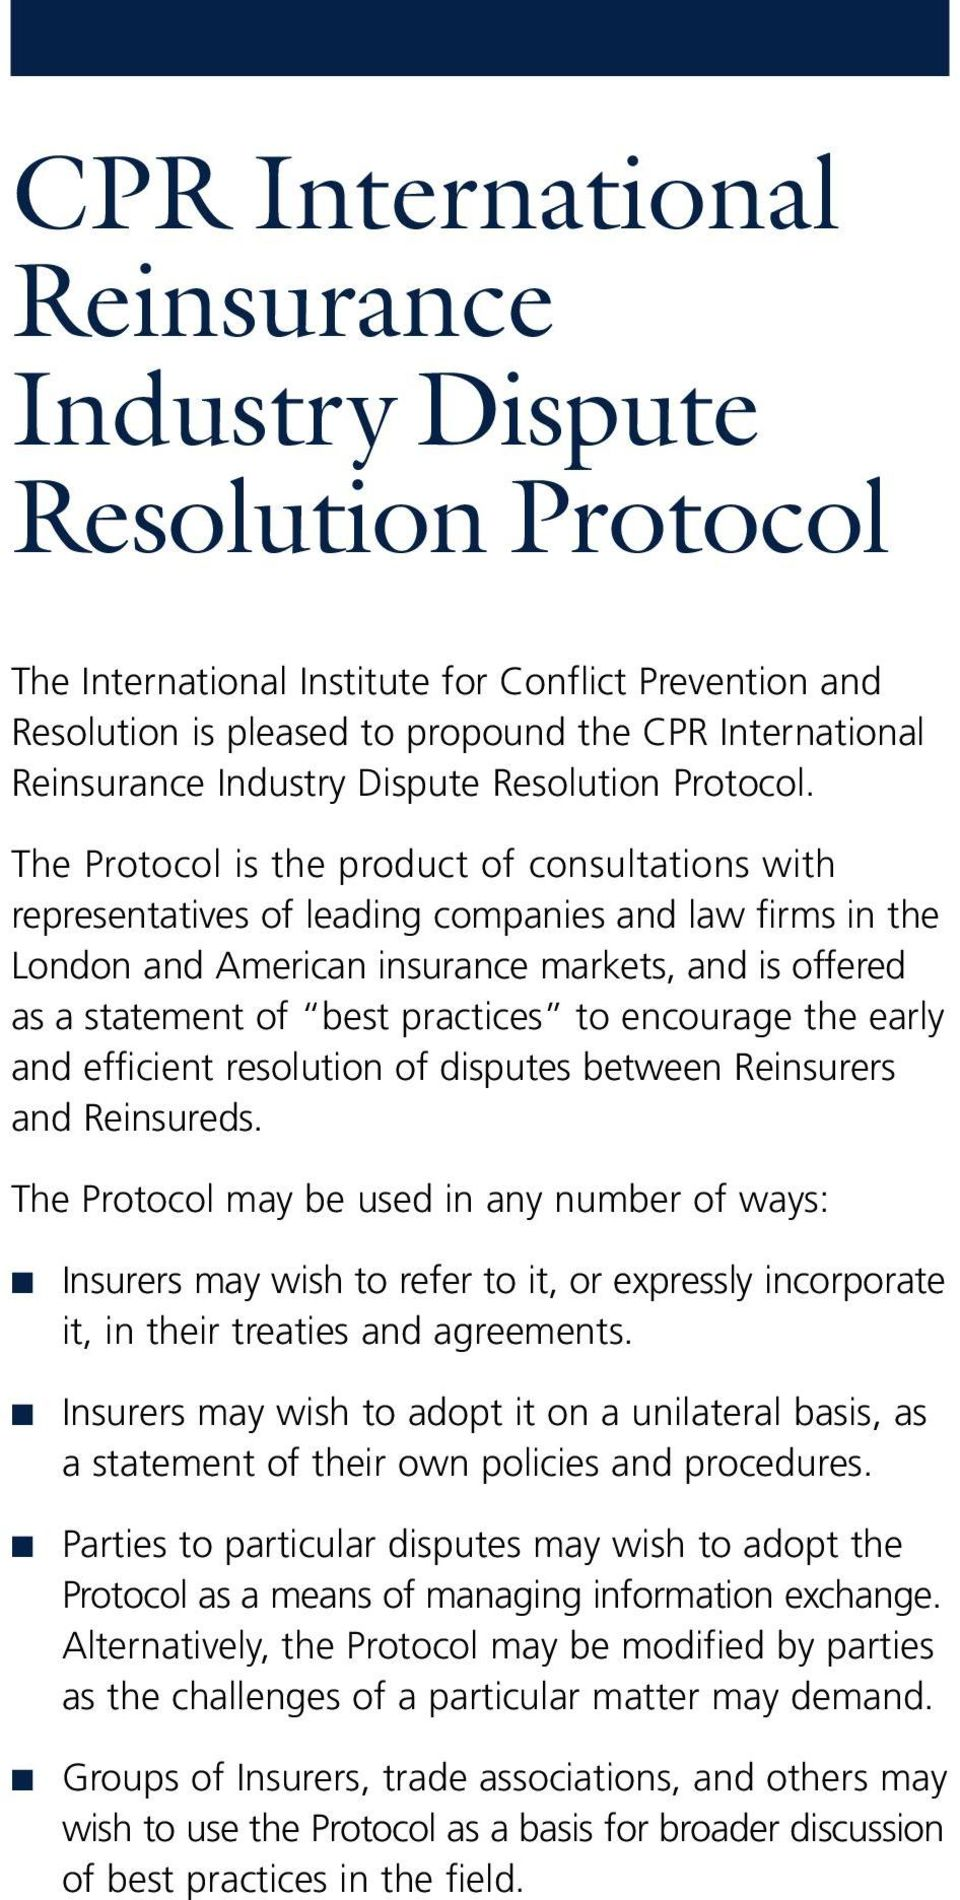 The Protocol is the product of consultations with representatives of leading companies and law firms in the London and American insurance markets, and is offered as a statement of best practices to